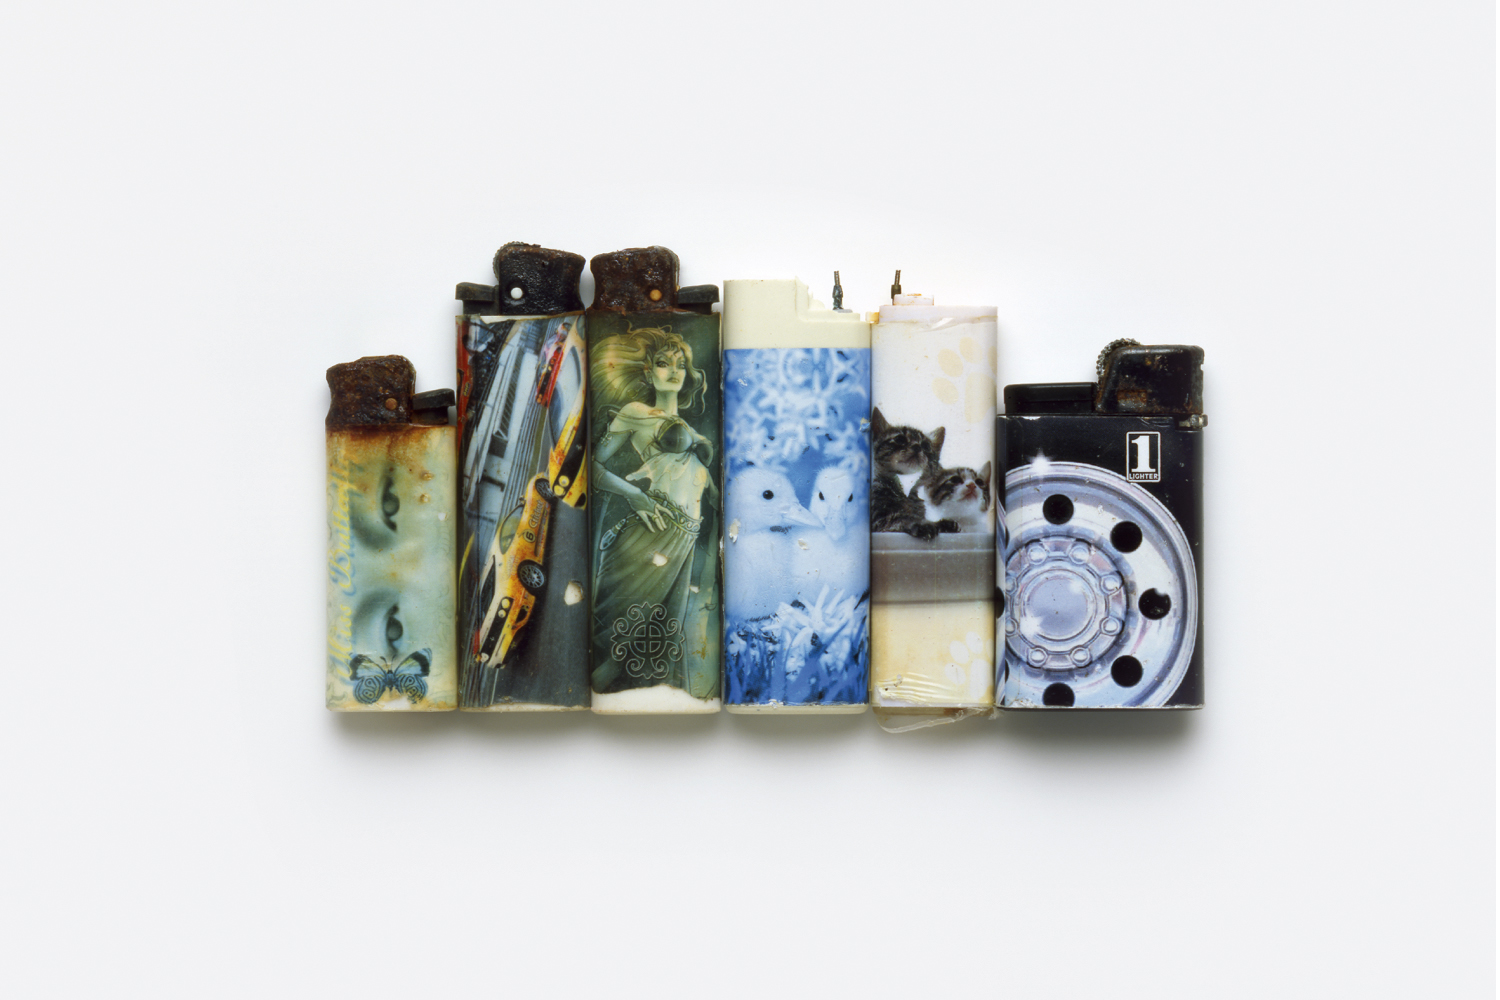 lighters2-gallery&resize.jpg